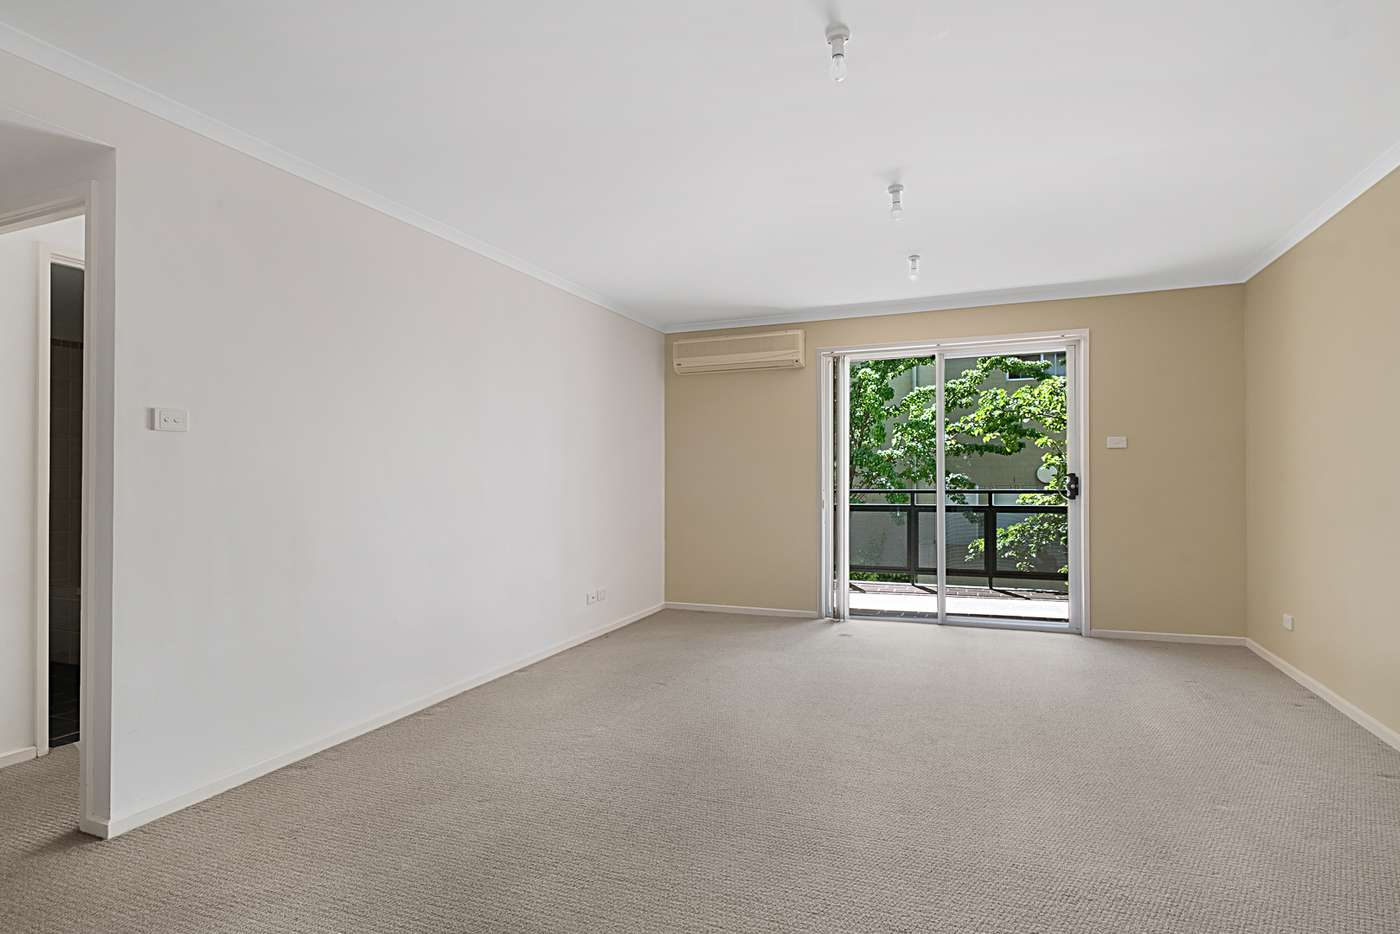 Sixth view of Homely apartment listing, 6/80 Gozzard Street, Gungahlin ACT 2912